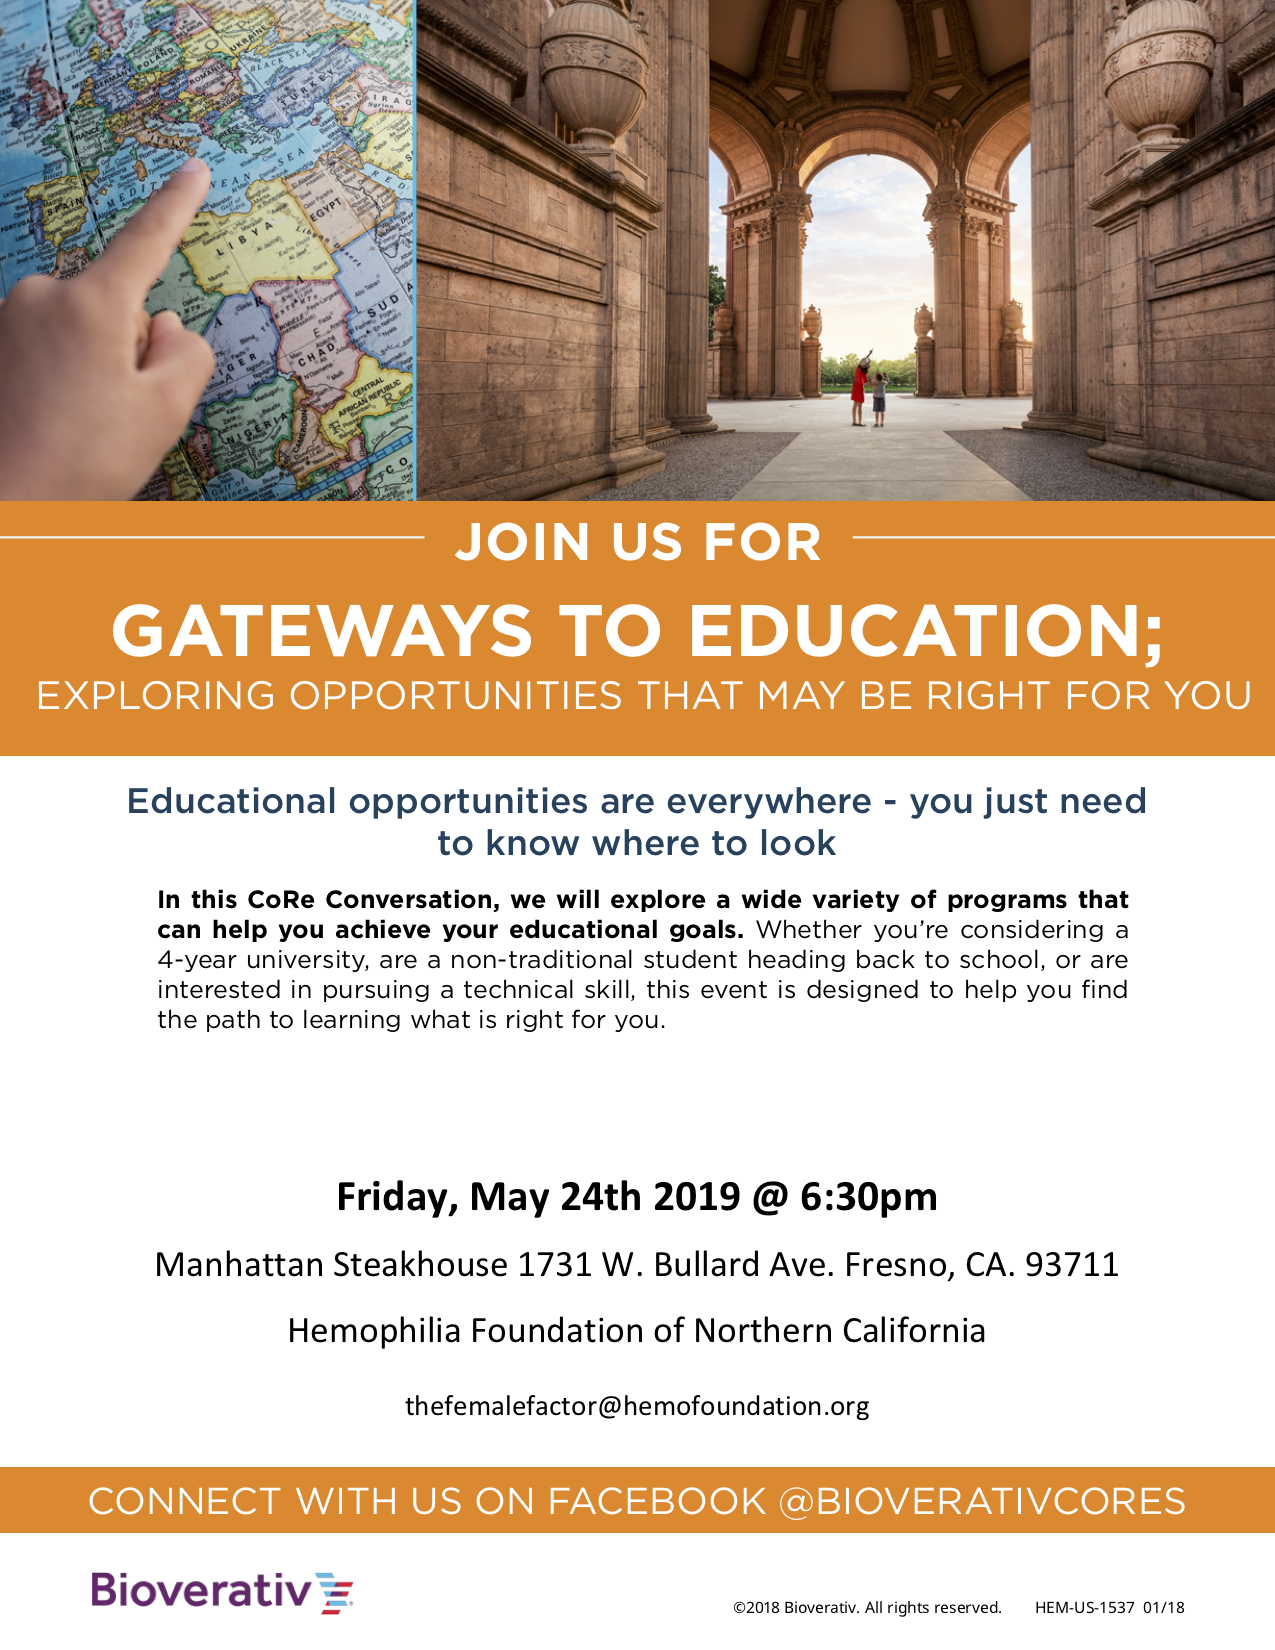 GATEWAYS TO EDUCATION; EXPLORING OPPORTUNITIES THAT MAY BE RIGHT FOR YOU